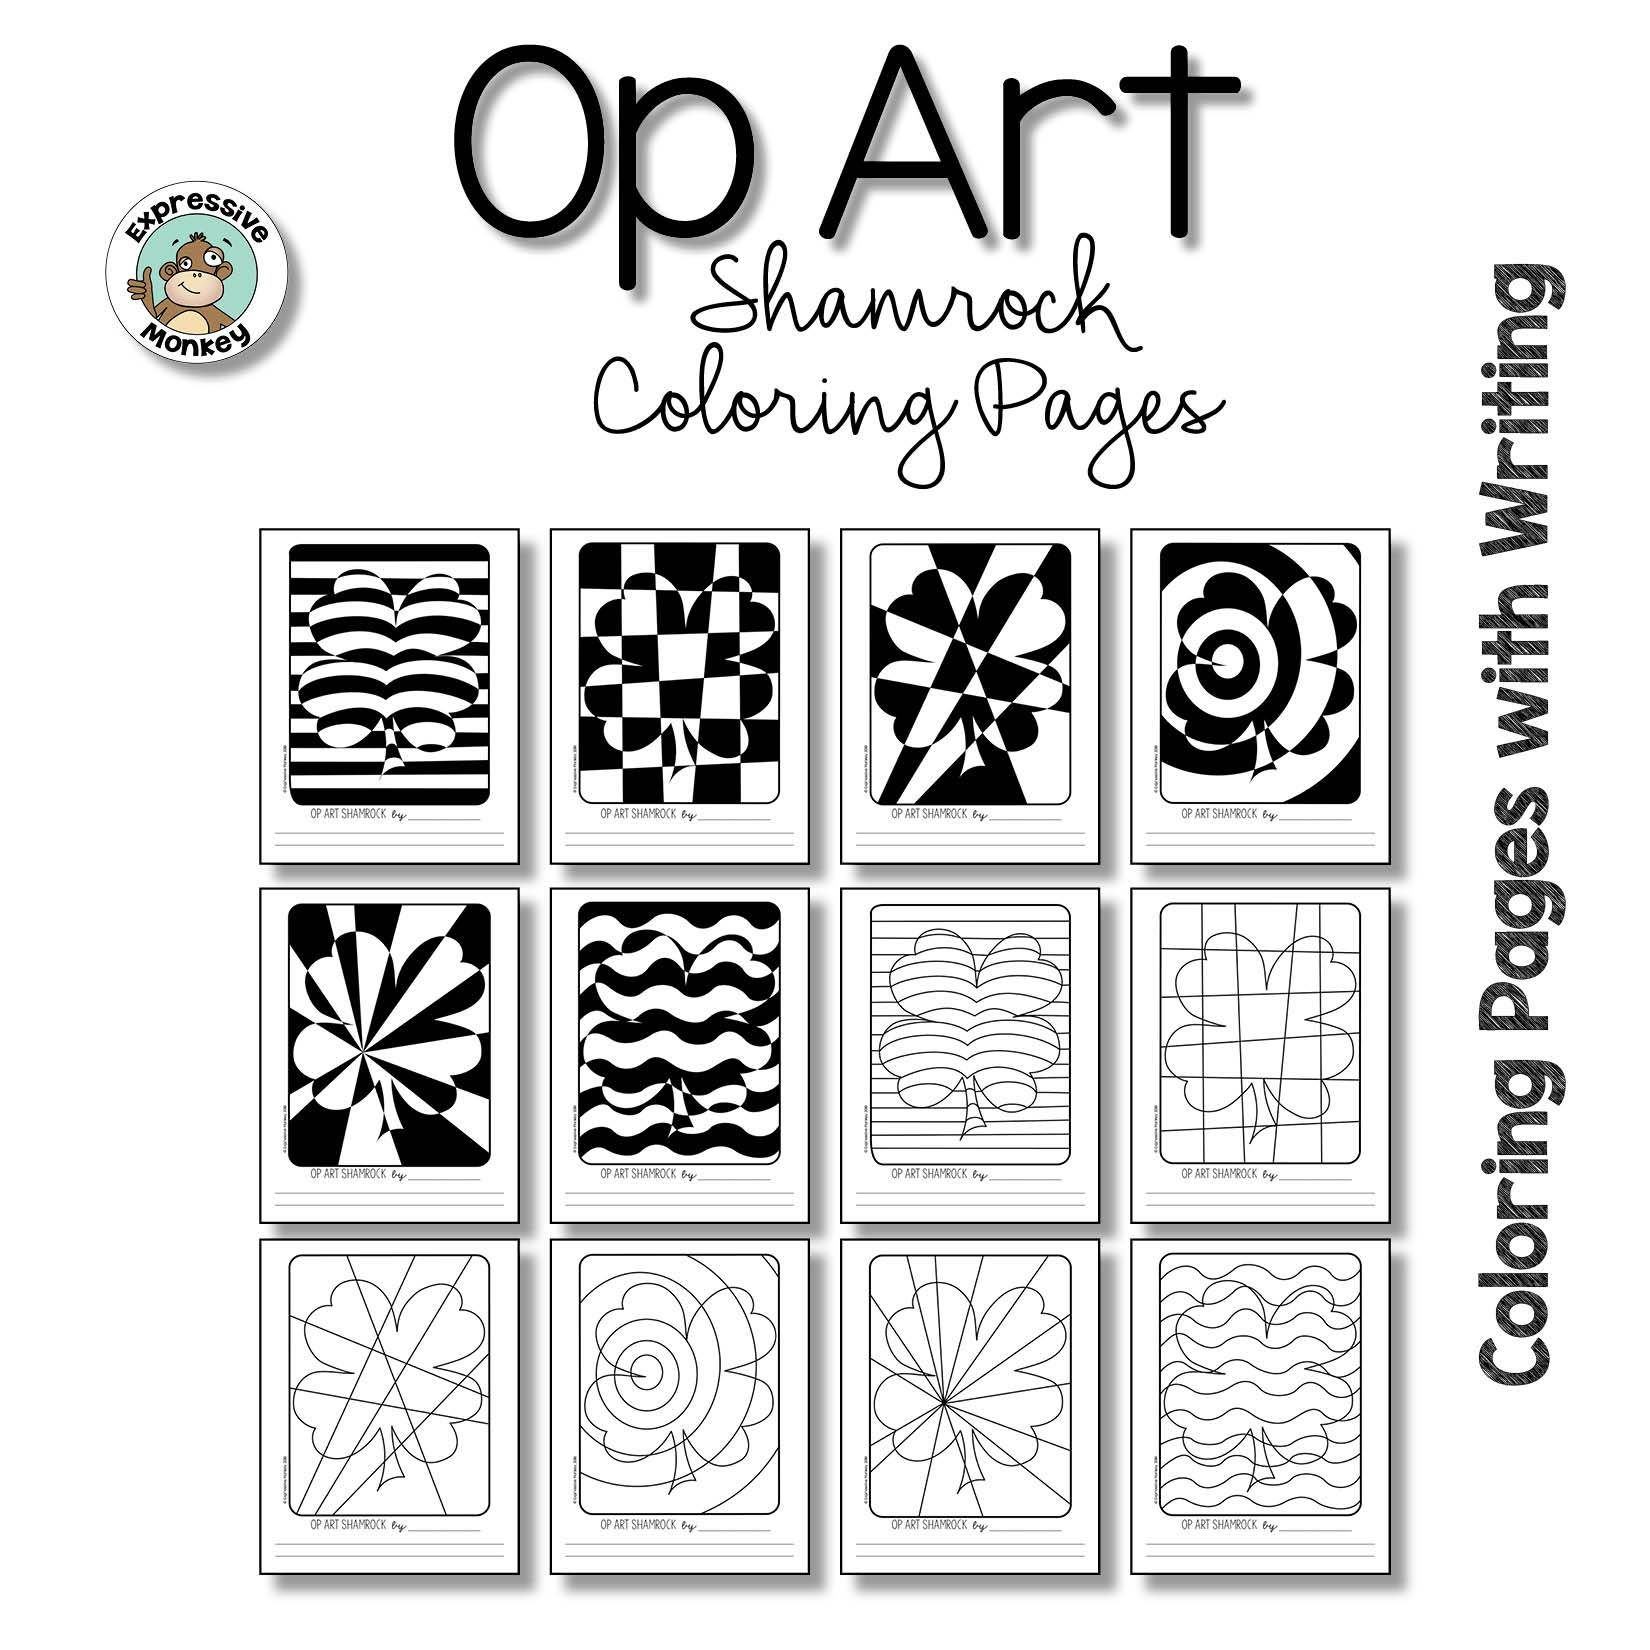 Op Art Shamrock Coloring Pages in 2020 | Op art lessons ...